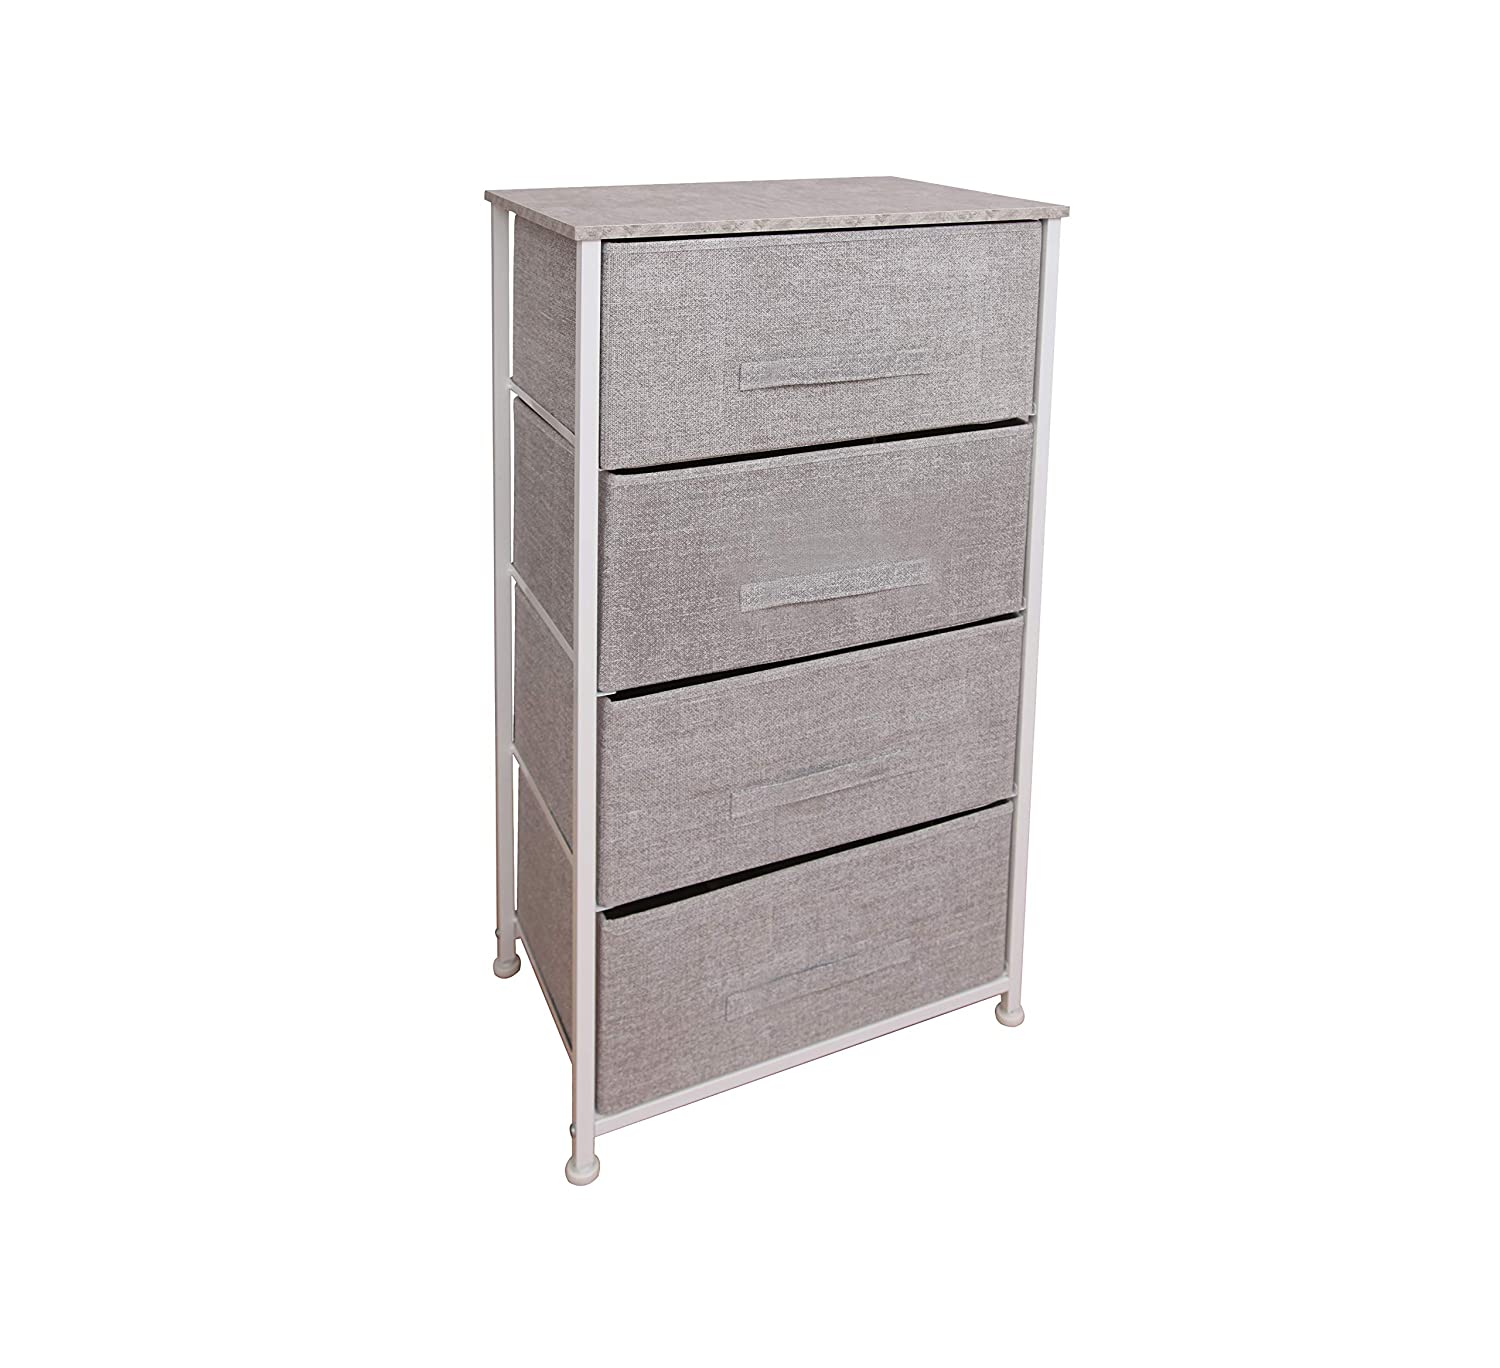 East Loft Tall 4 Drawer Dresser |Storage Organizer for Closet, Nursery, Bathroom, Laundry or Bedroom | Fabric Drawers, Solid Wood Top, Durable Steel Frame (Light Grey)